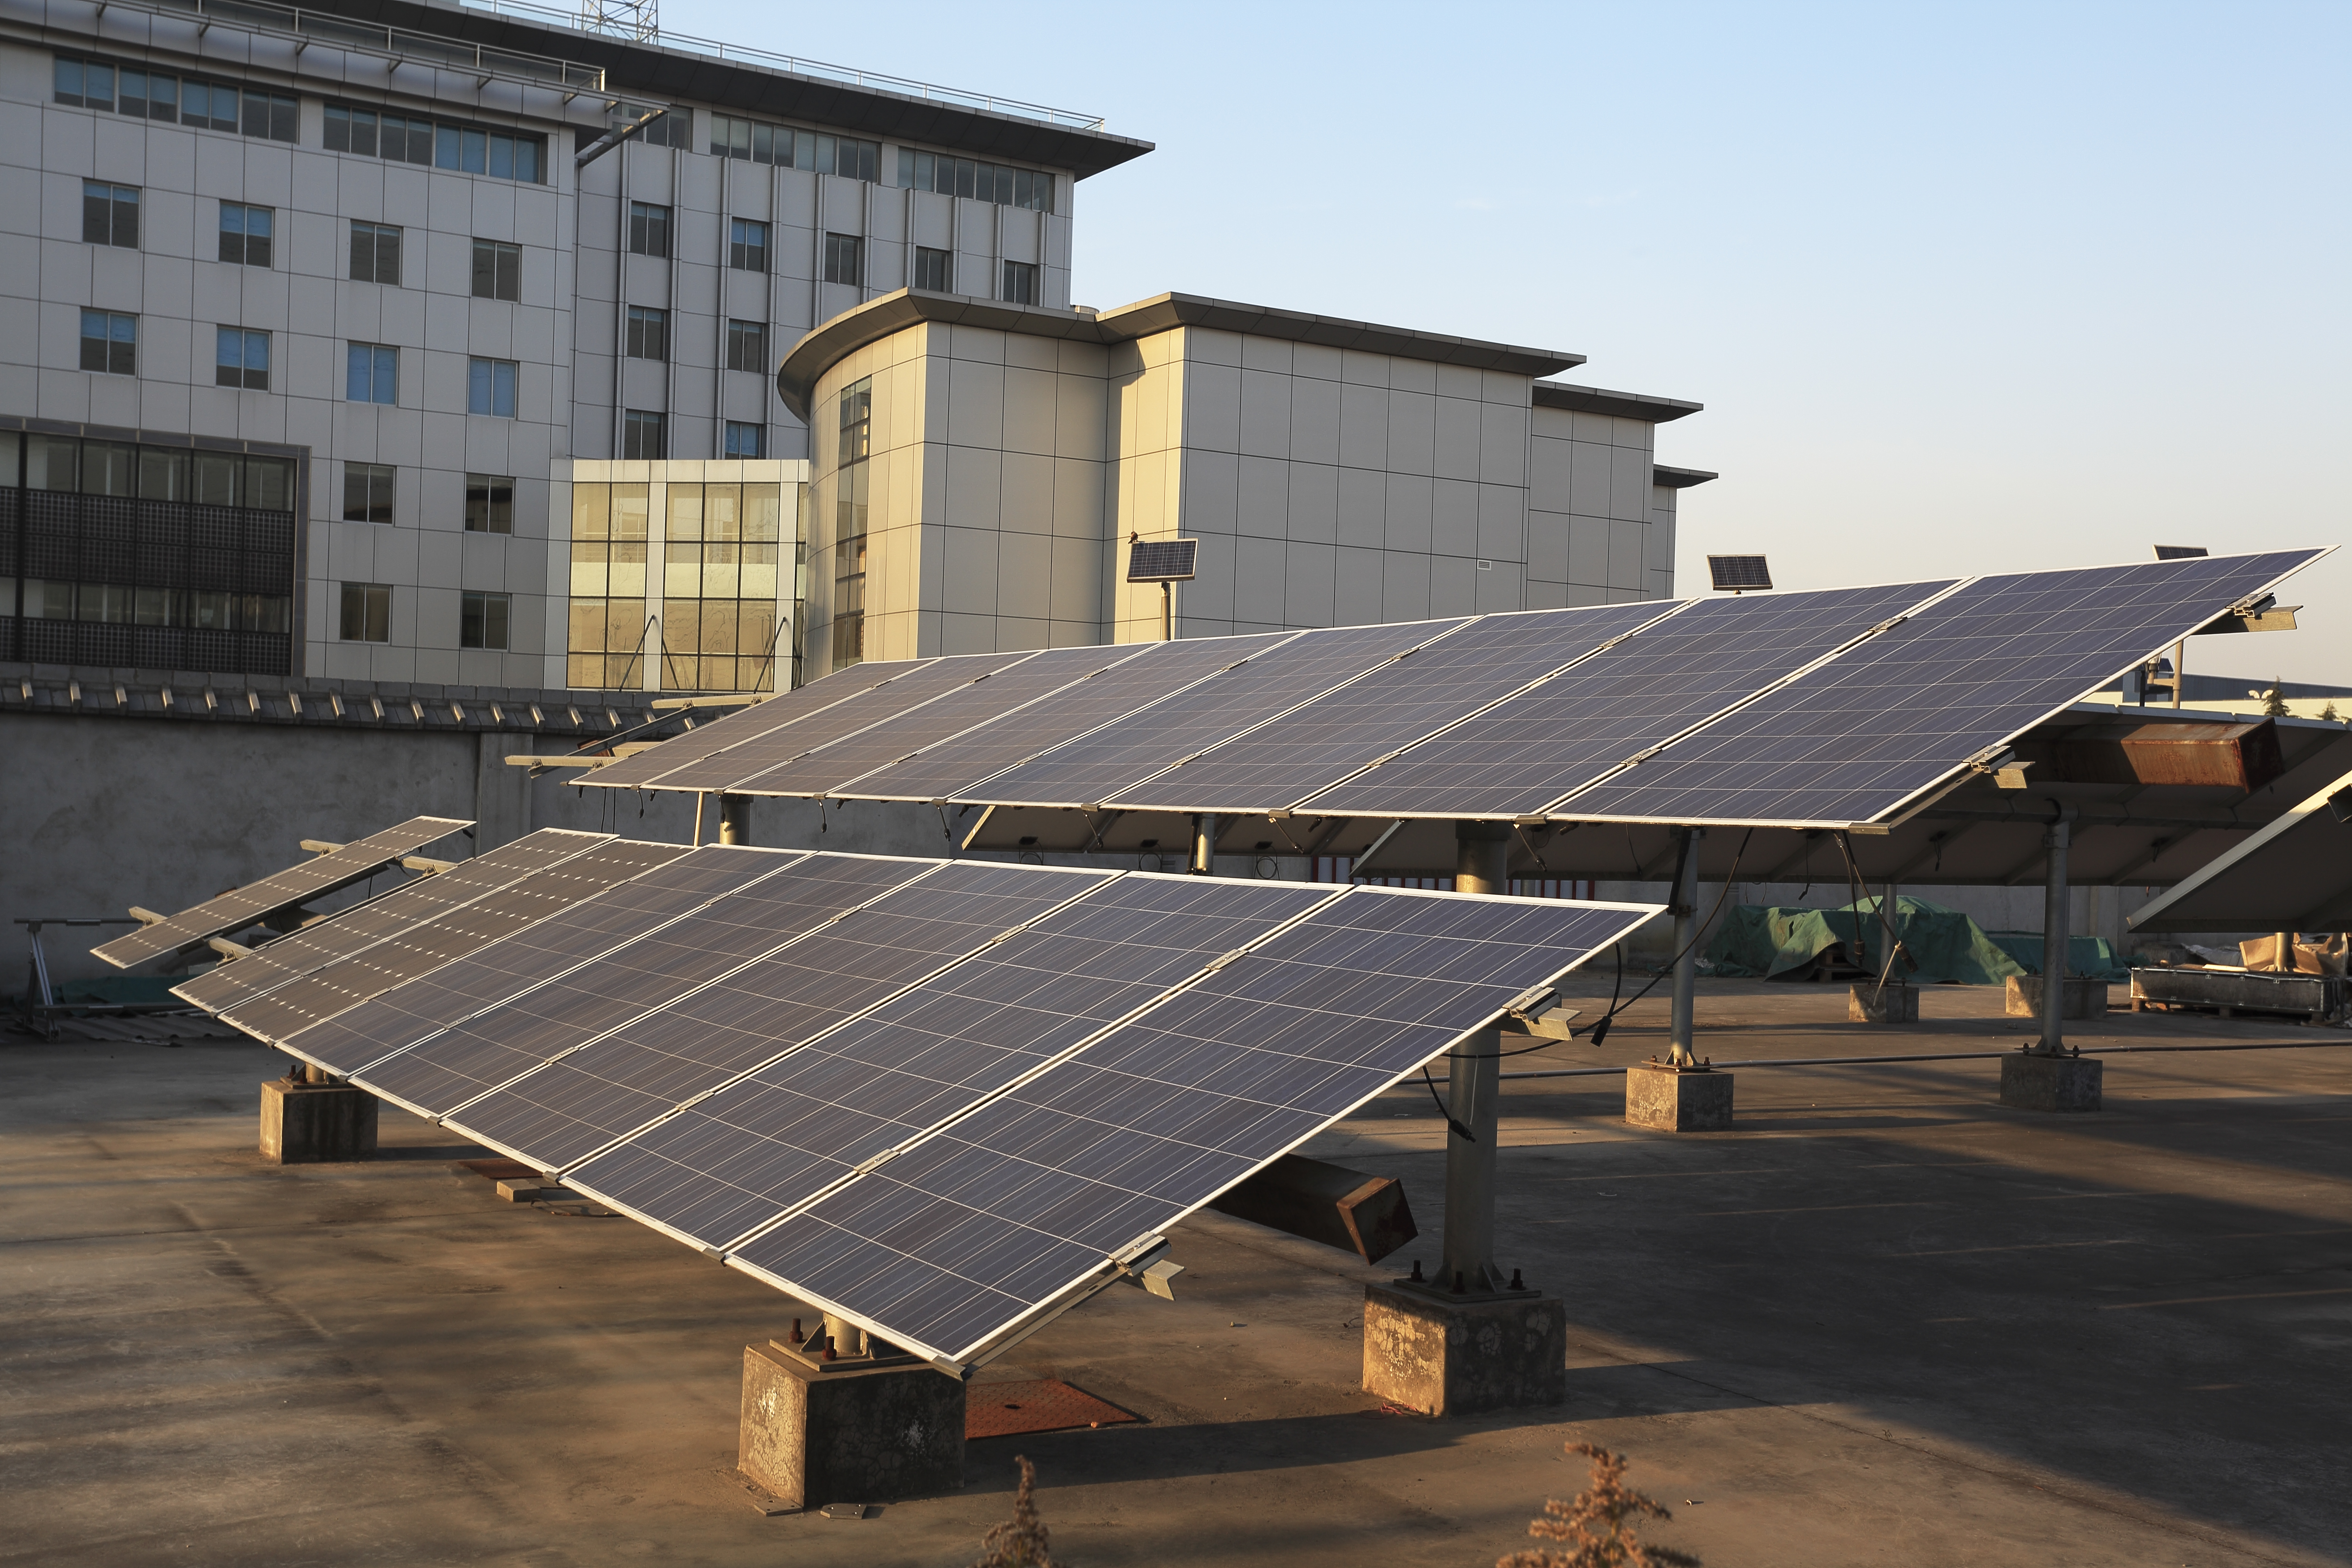 Use of solar power plants on the roof buildings